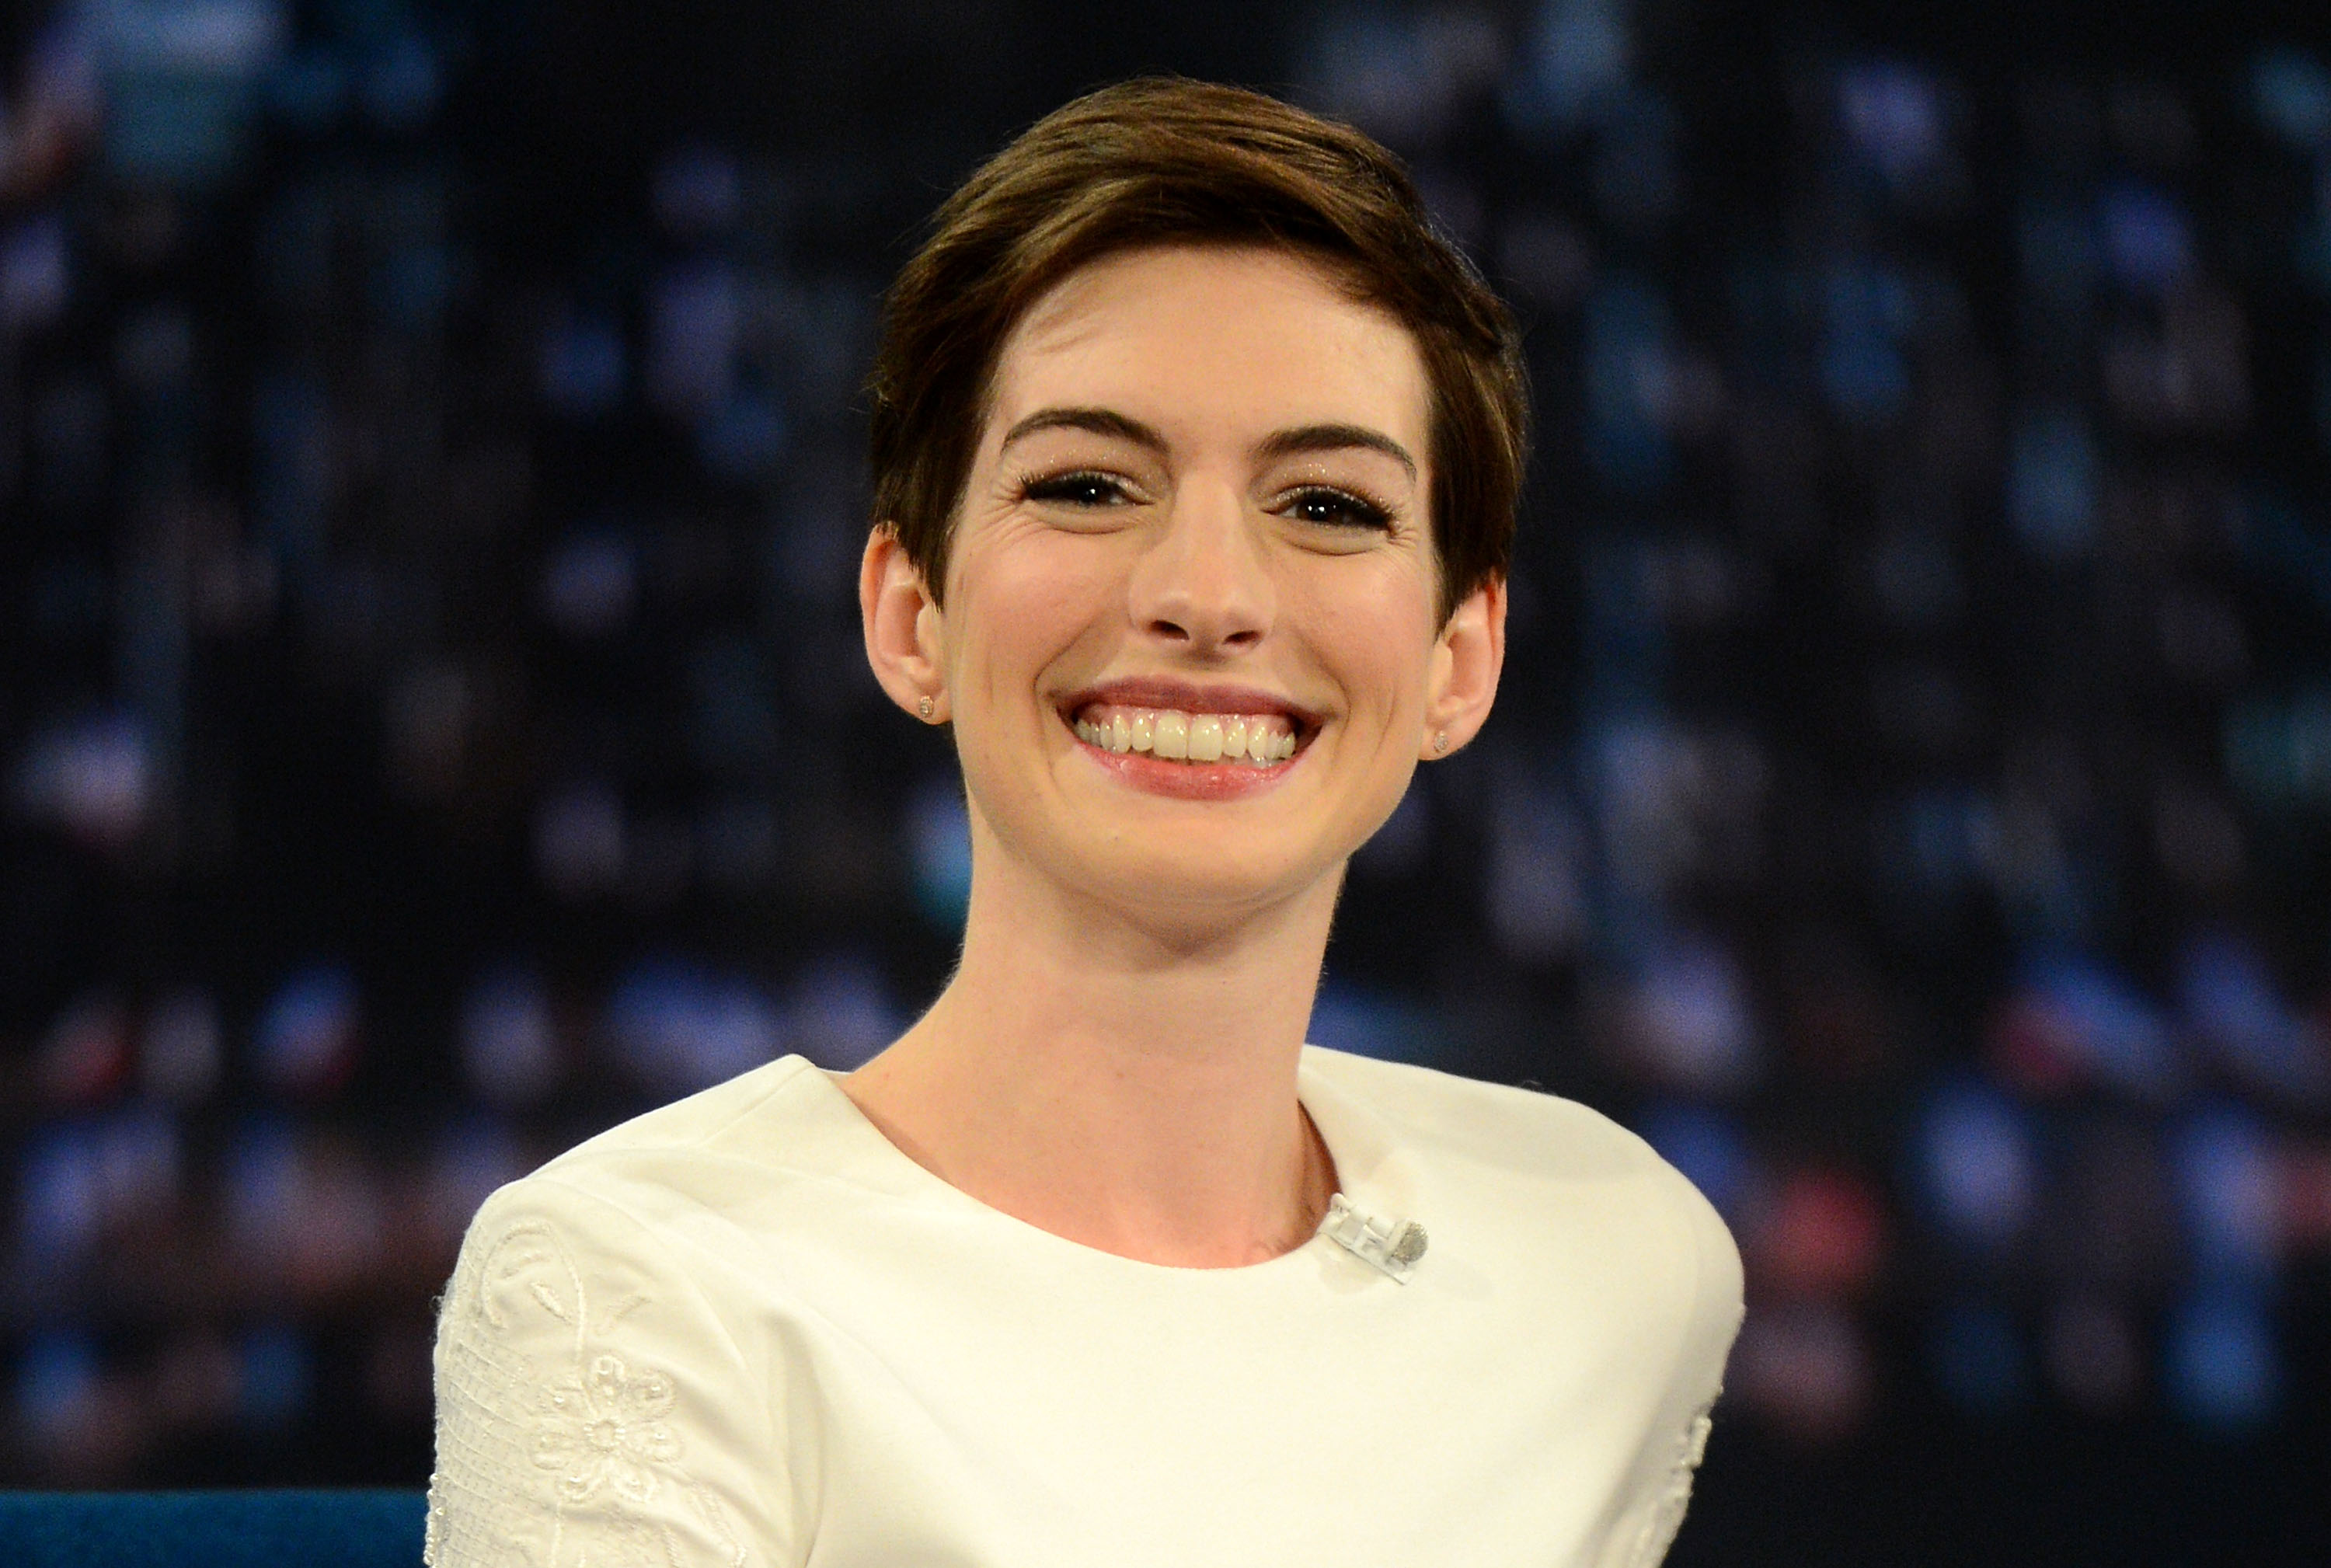 Anne Hathaway Has A Bob Haircut Now Proving She Can Rock Literally Any Hair Cut Out There